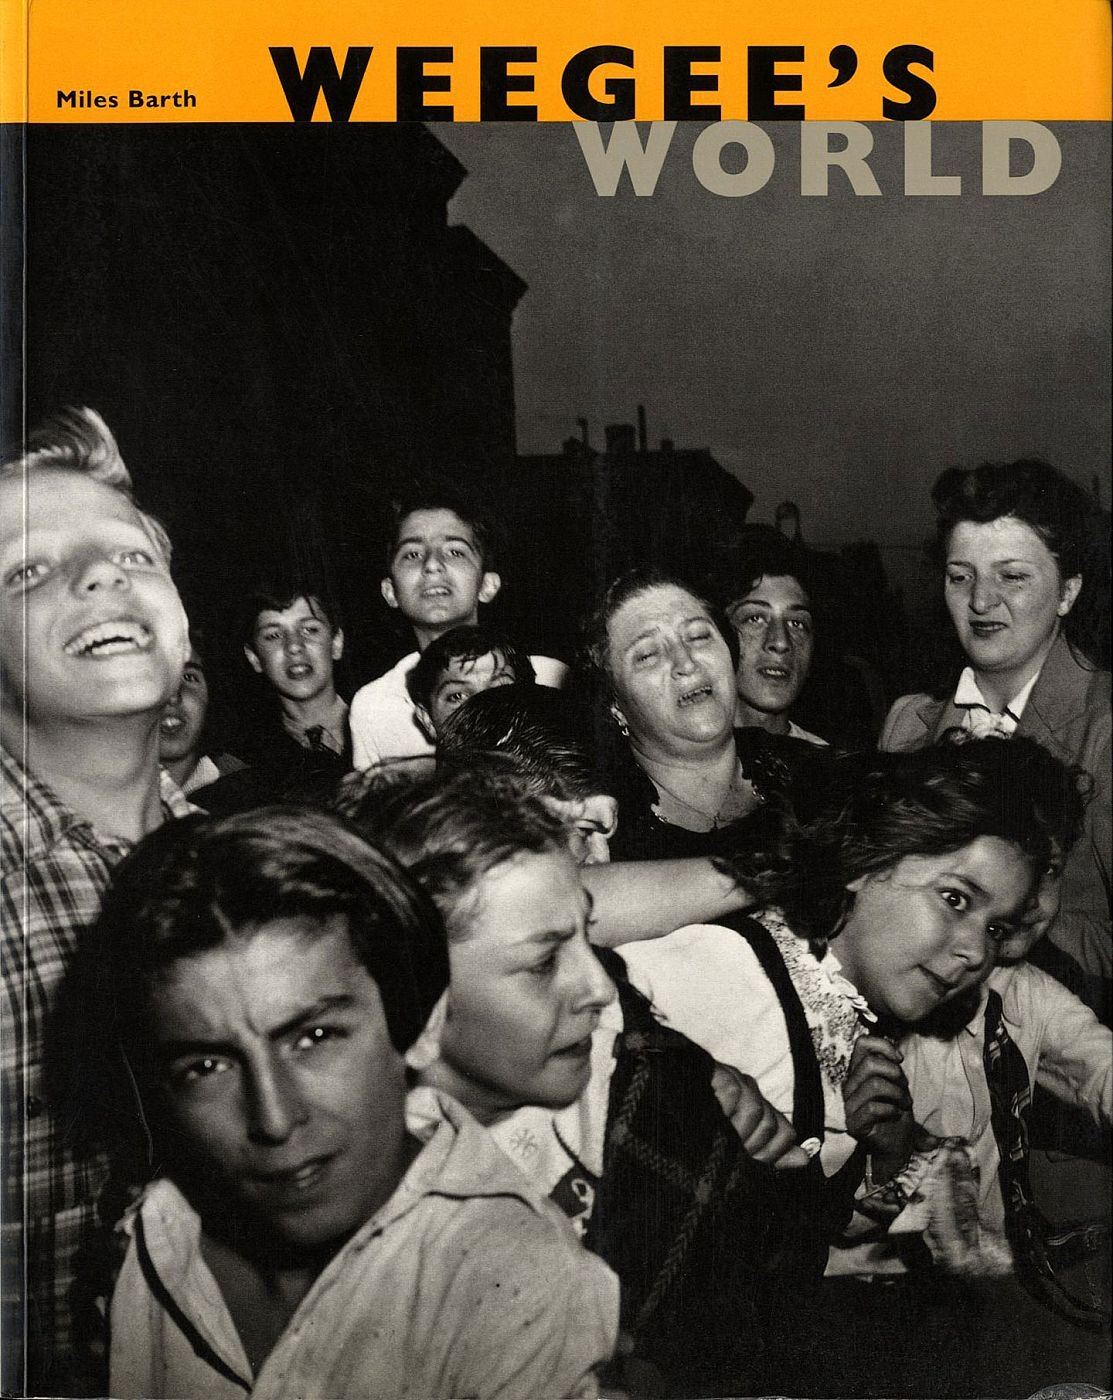 Weegee's World